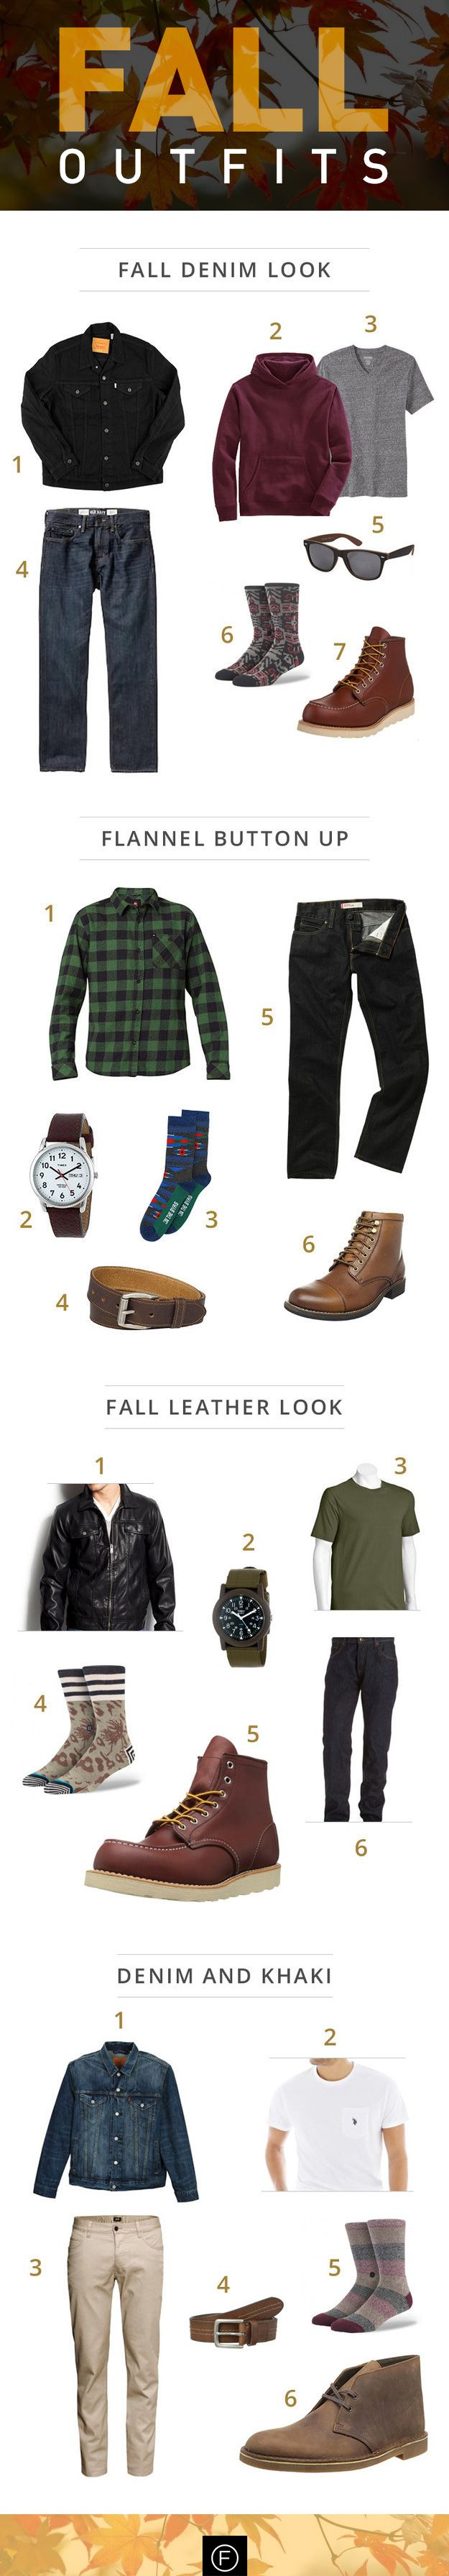 Here are some great outfit ideas for Fall. http://famousoutfits.com/blog/fall-2014-mens-style-guide/ #fallstyle #fallfashion #mensfashion